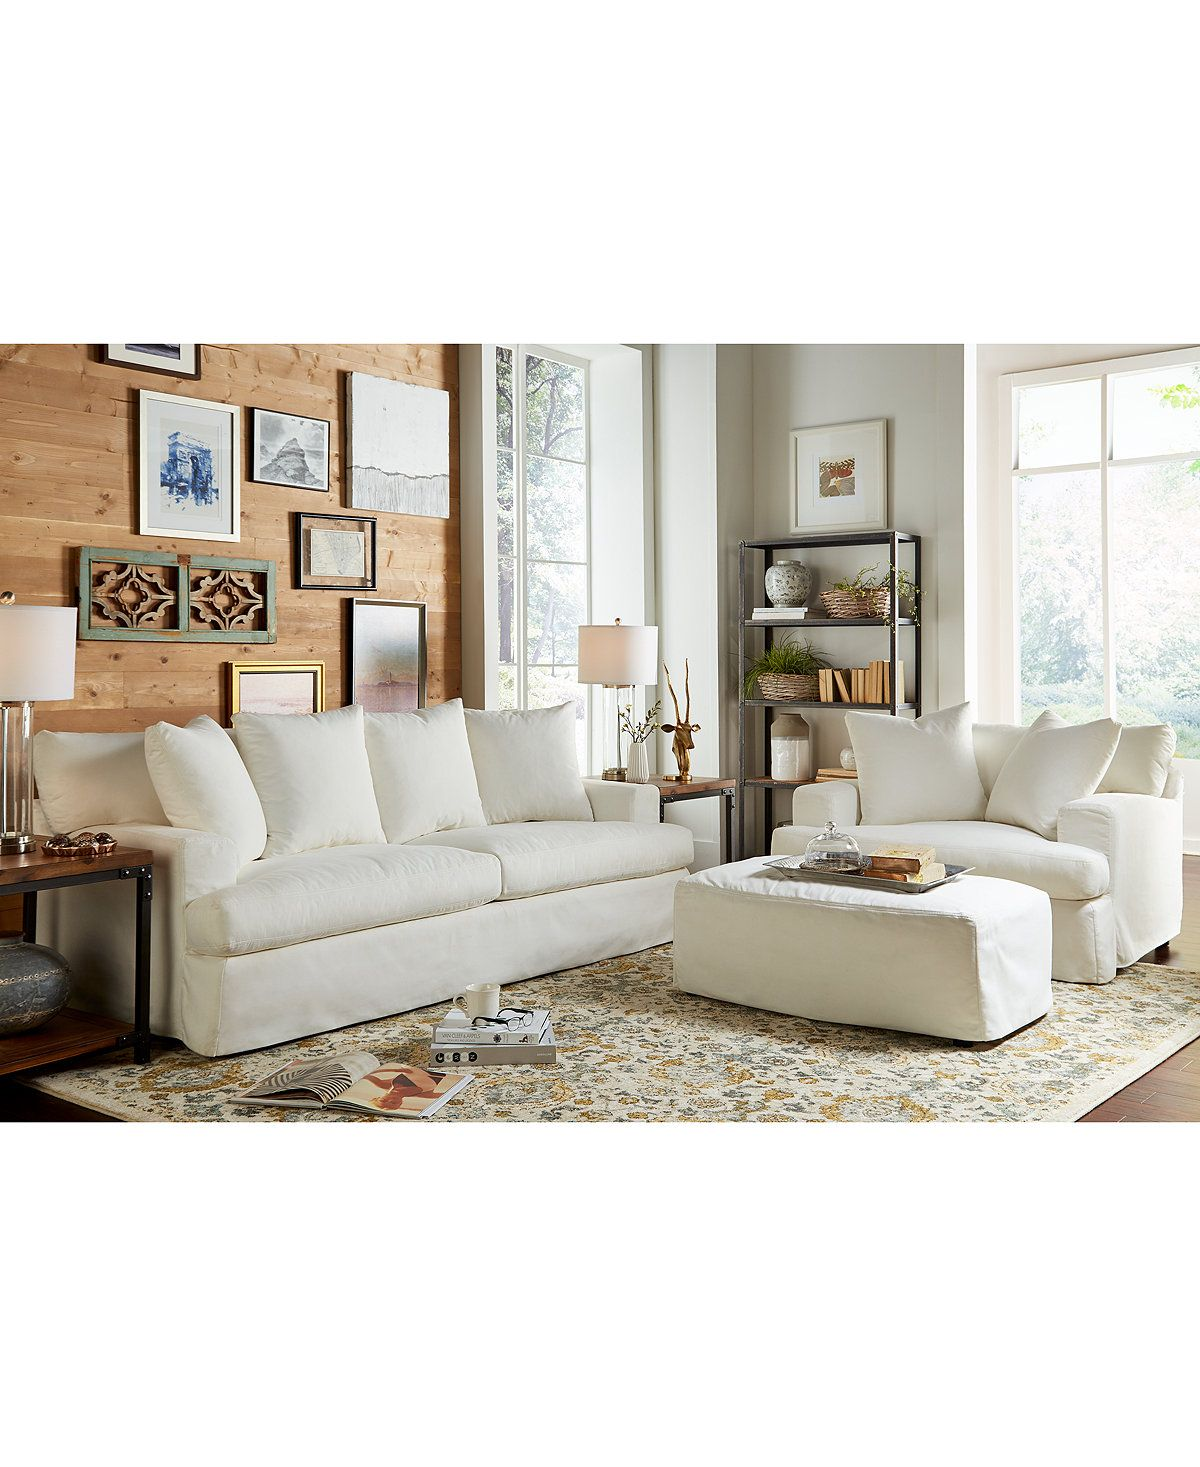 Furniture Brenalee 93 Rustic Living Room Furniture Furniture Couch Furniture